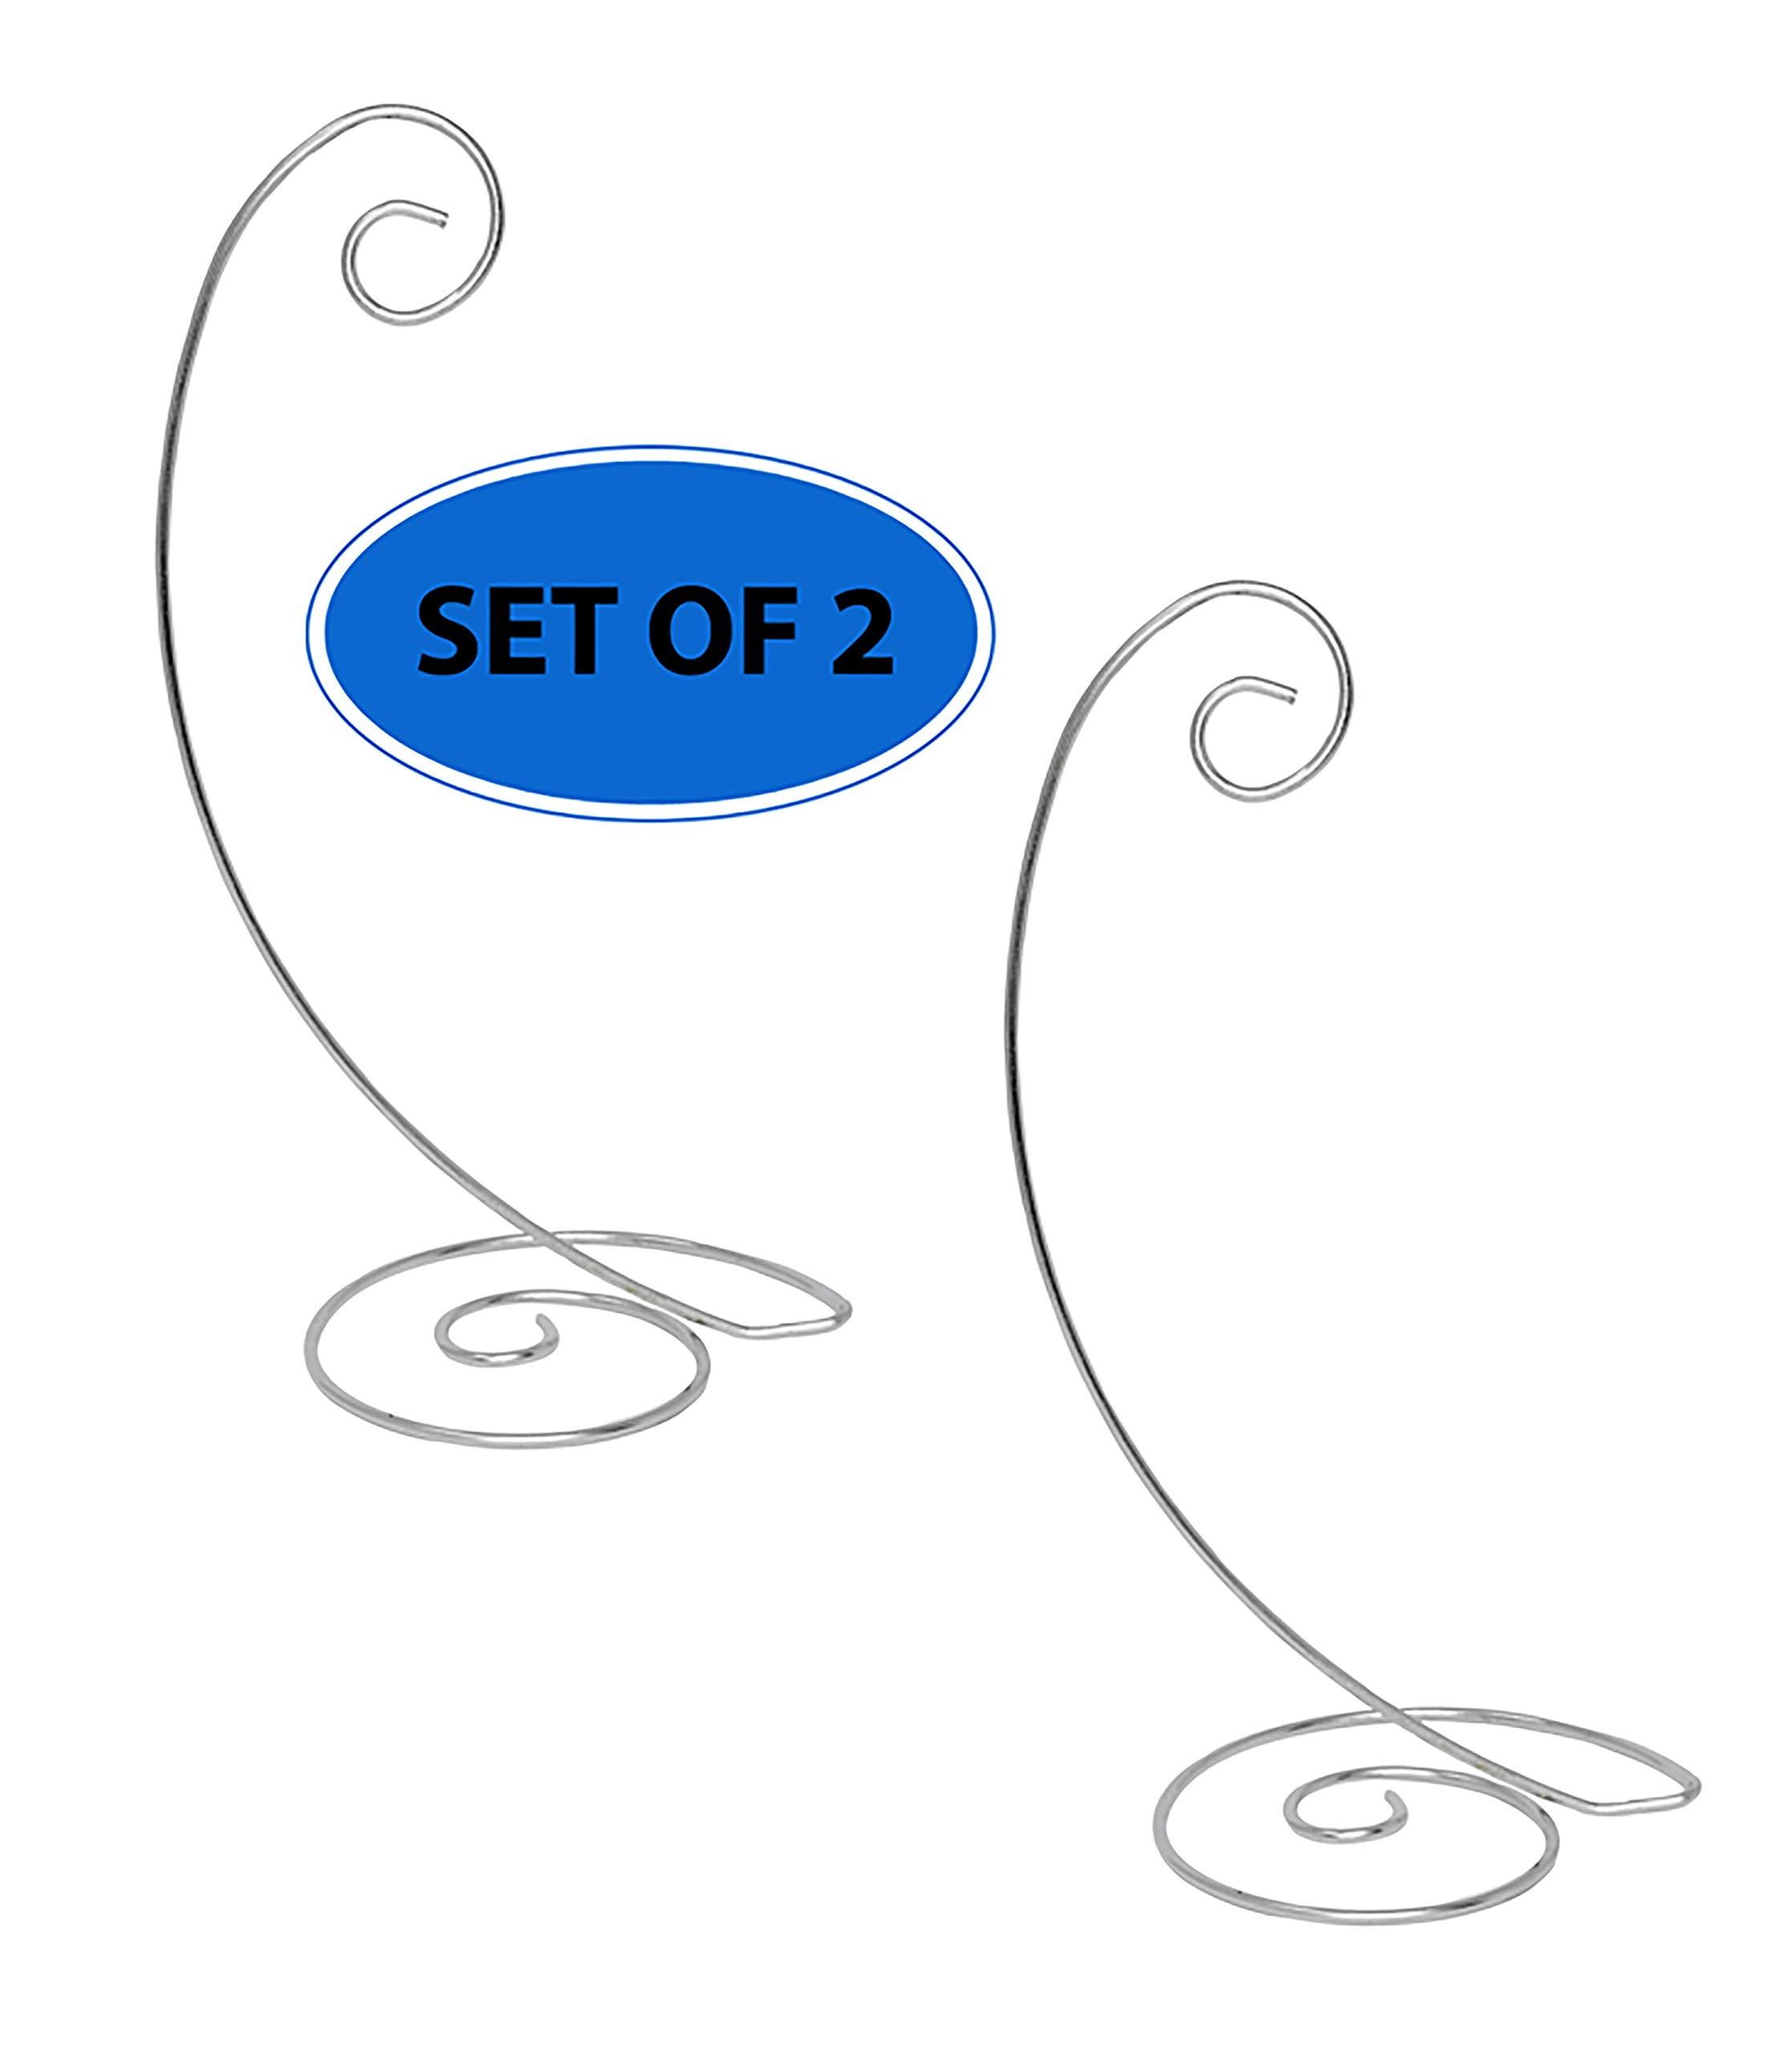 Home-X Spiral Ornament Stand. 13 inch. Chrome. Set of 2